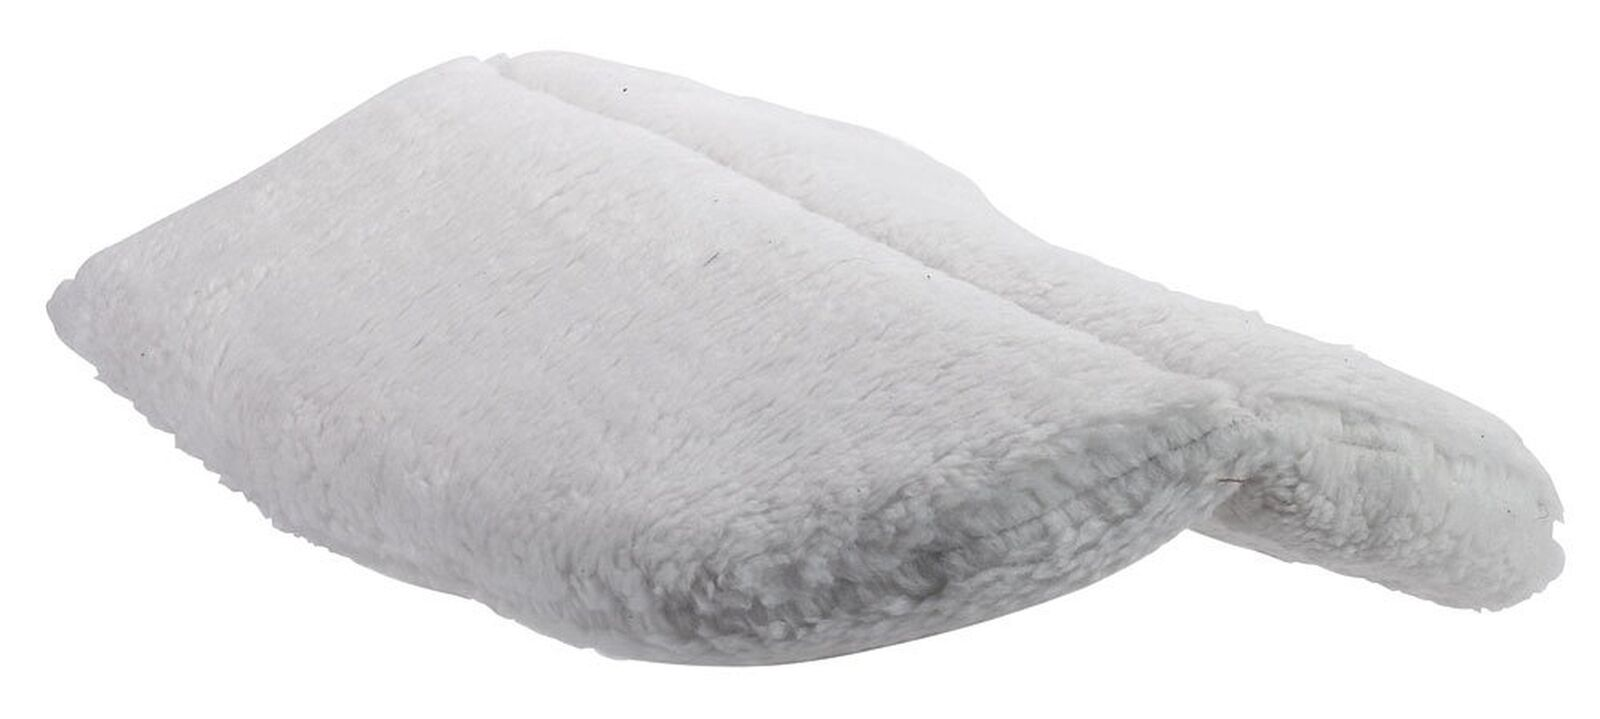 Kerbl 32370 Lamb Skin Cover for Girth -  White  quick answers